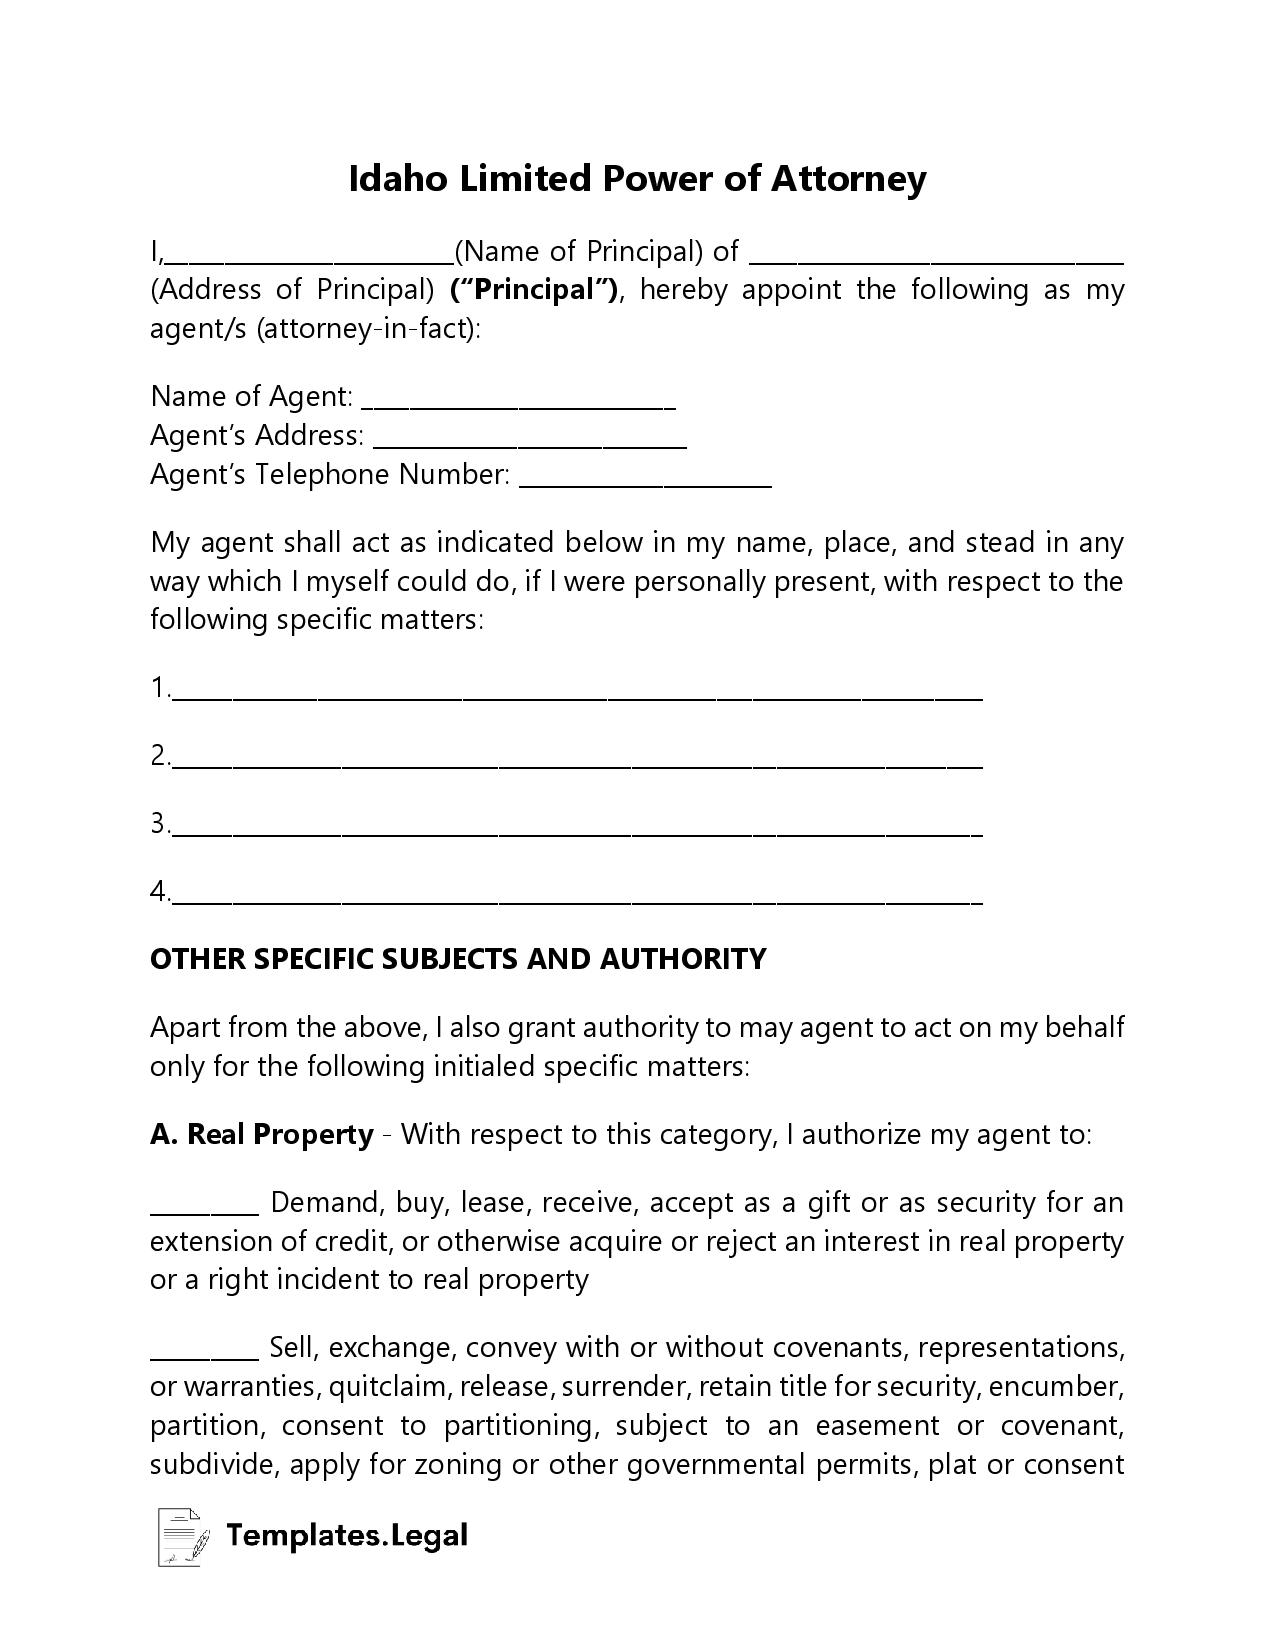 Idaho Limited Power of Attorney - Templates.Legal